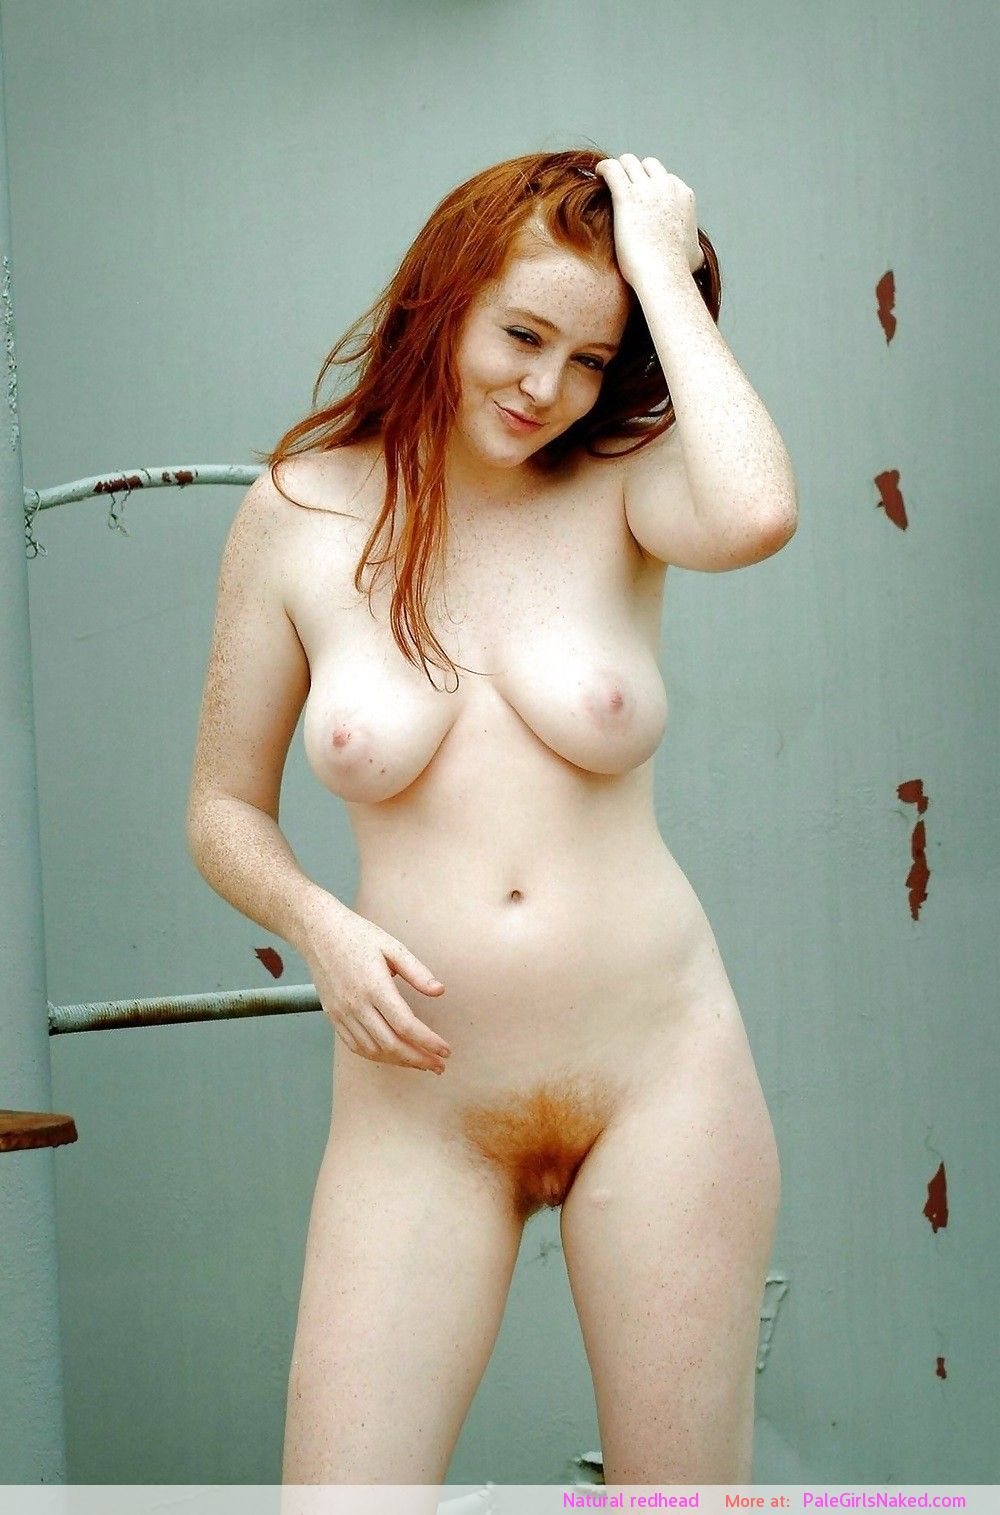 Naked redhead woman photos